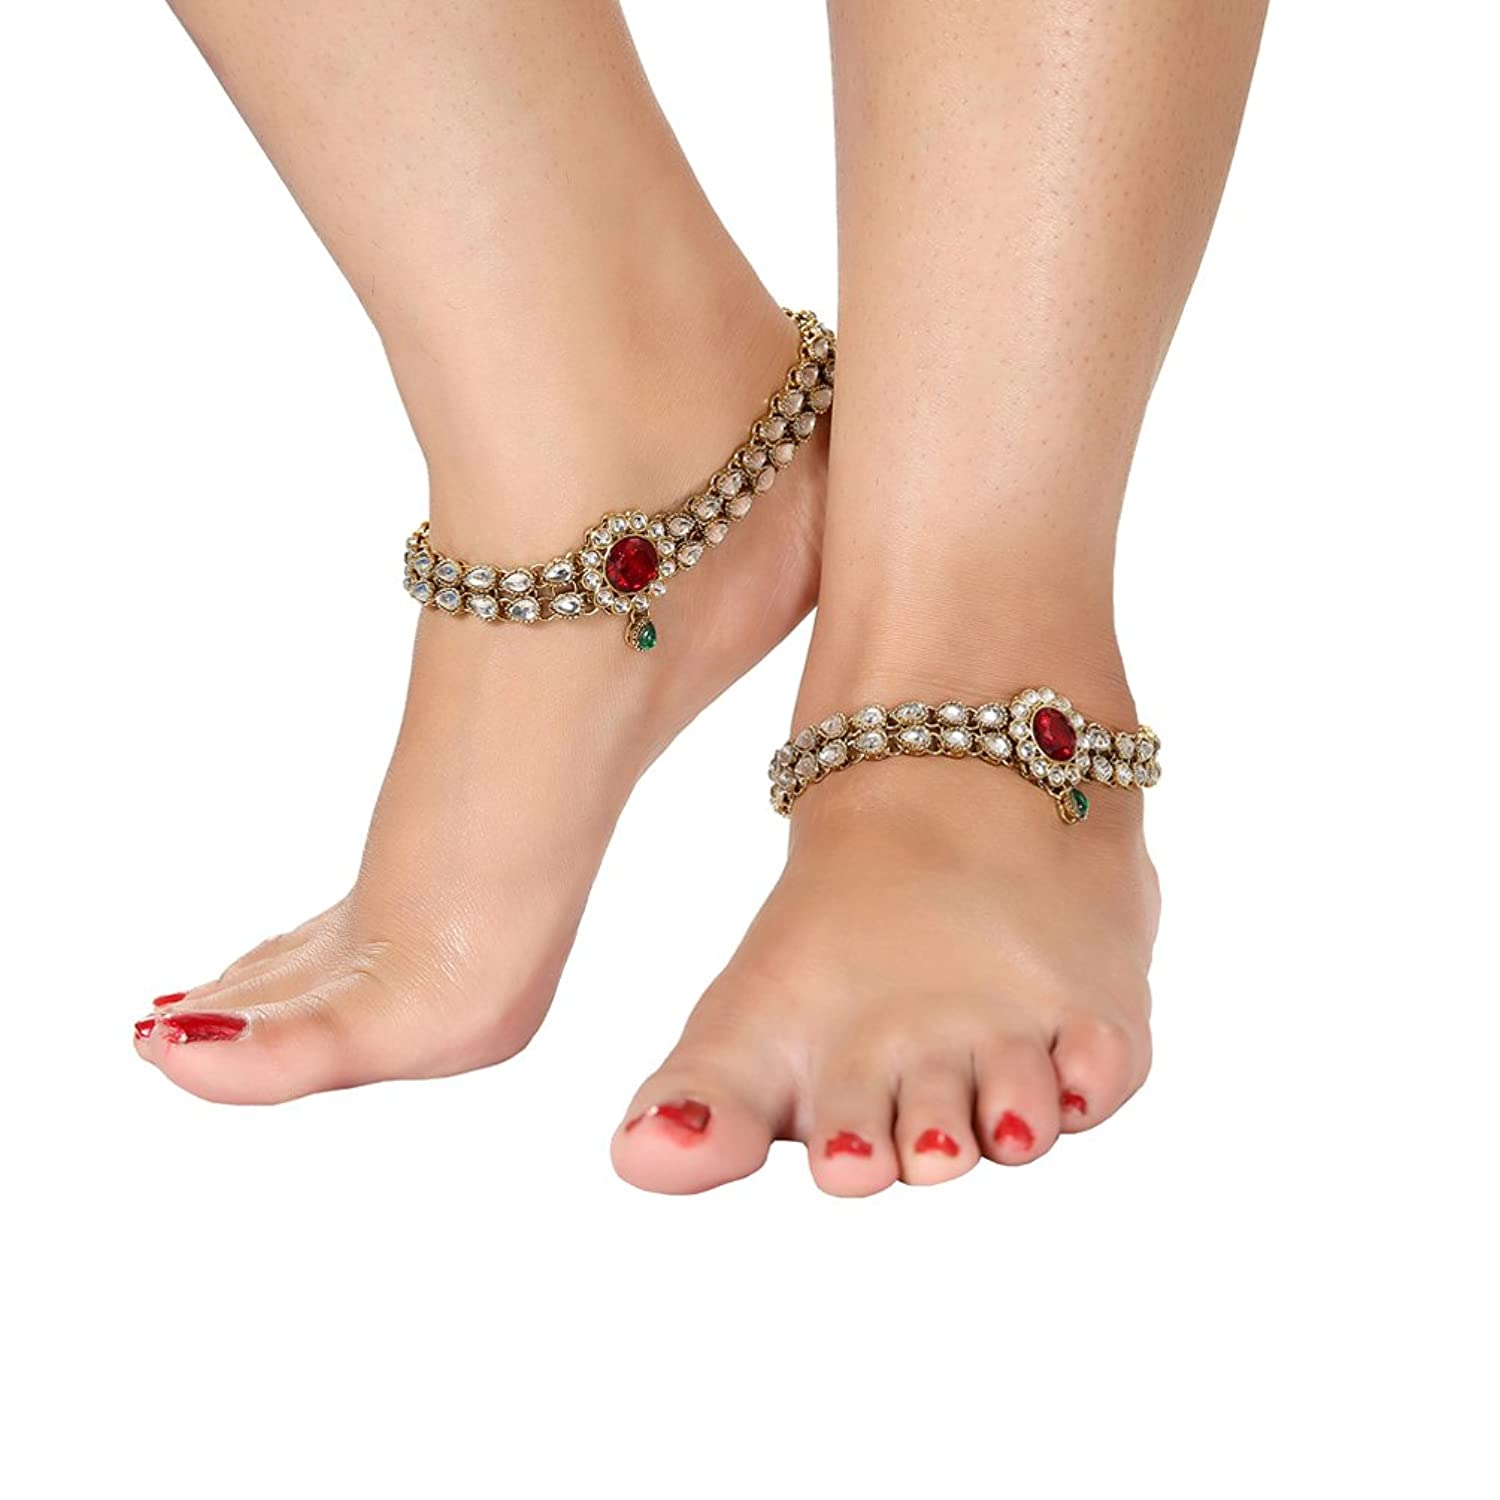 Anklets for Women: Buy Anklets for Women Online at Best Prices in ...